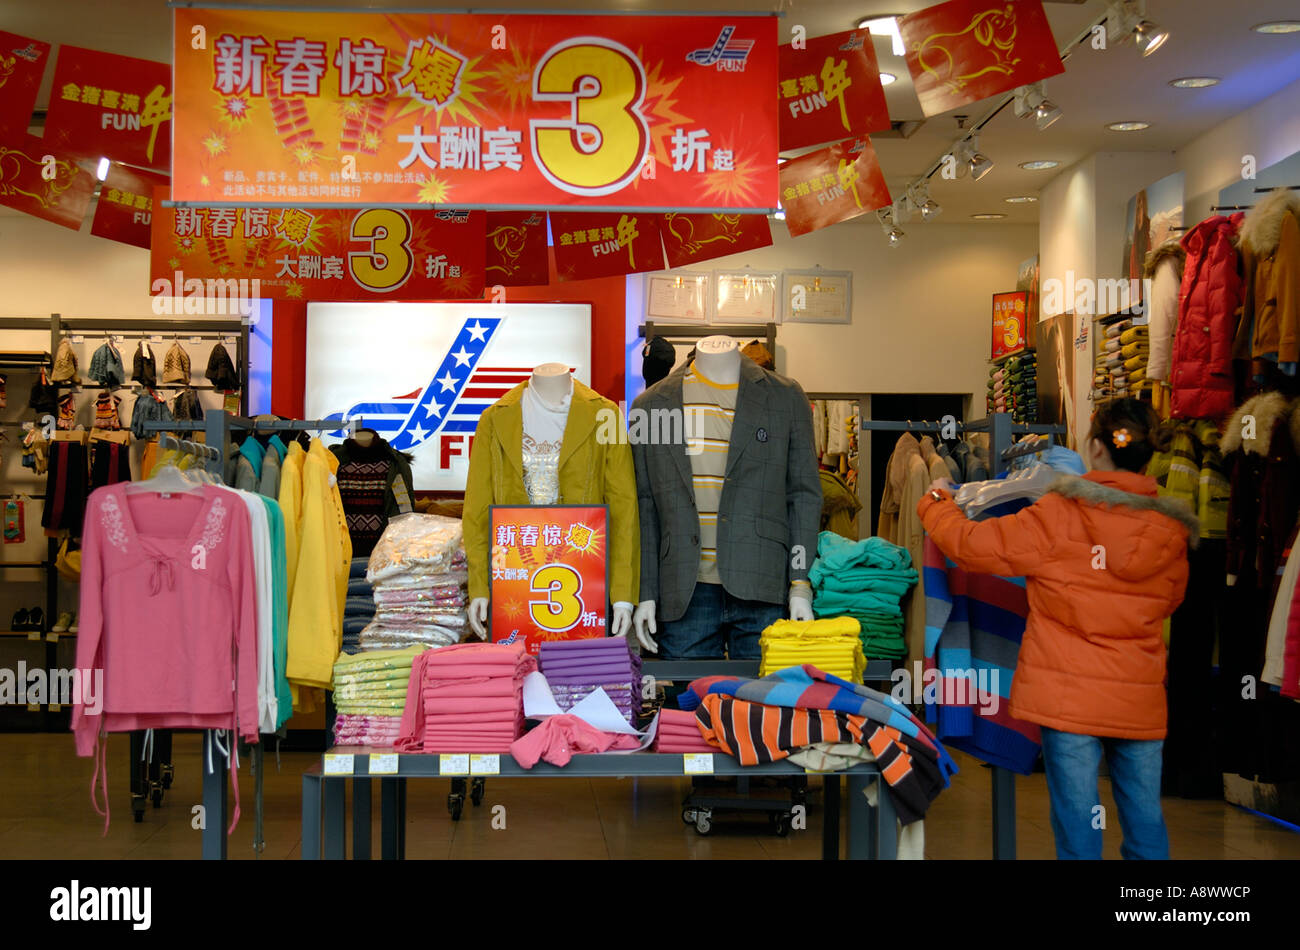 93a9794e91c Chinese Clothing Store Stock Photos   Chinese Clothing Store Stock ...